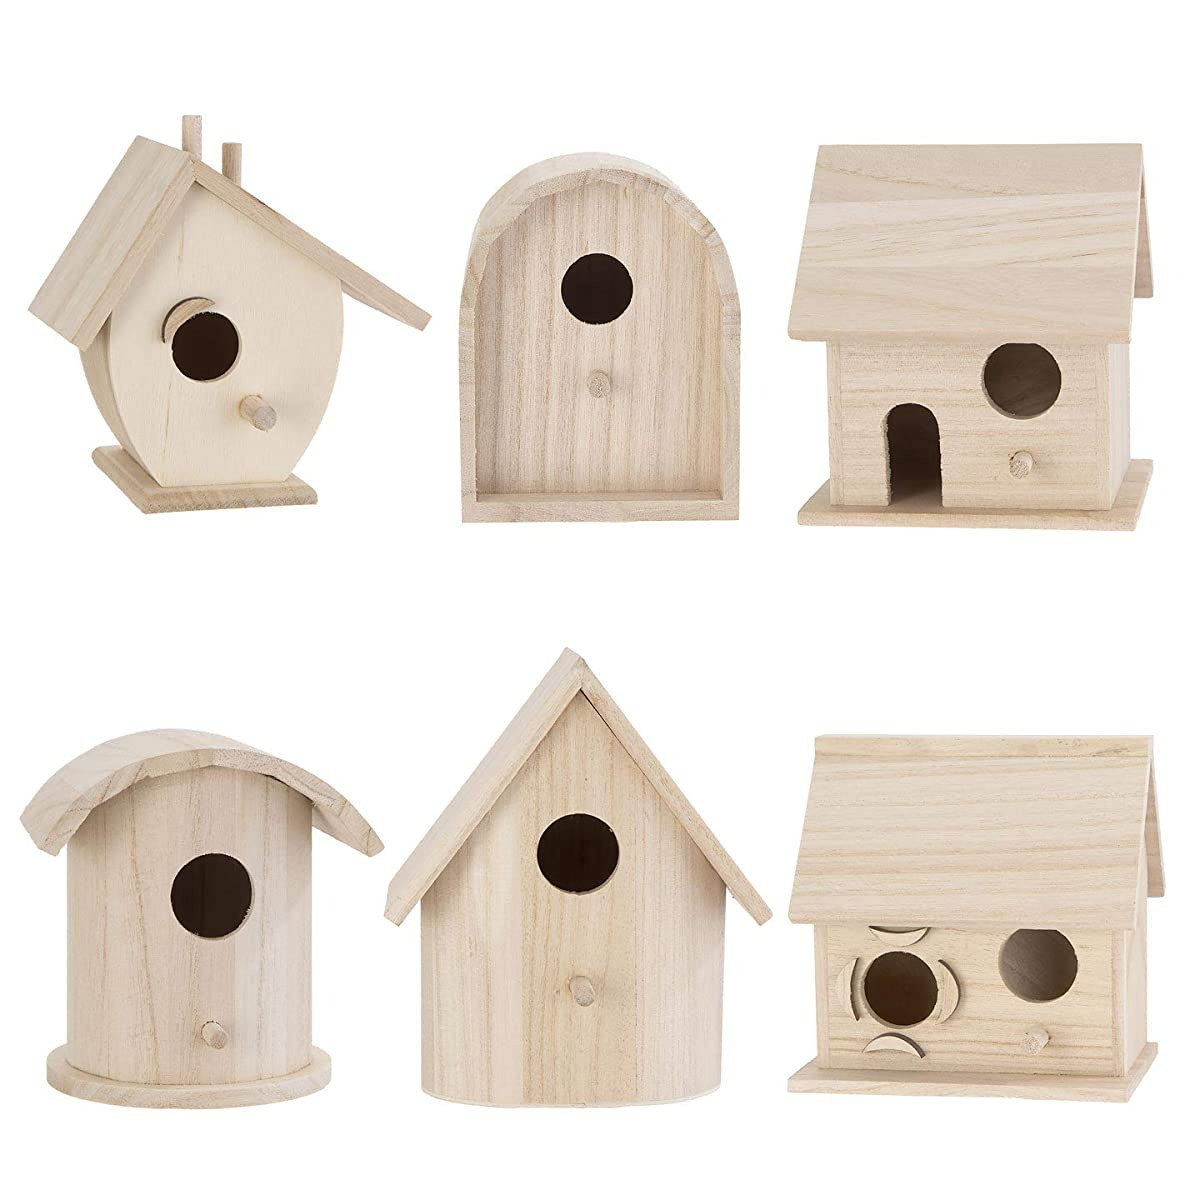 Bulk Buy: Darice DIY Crafts Wood Birdhouse Wren Promo Assortment 5-7 inches each (6-Pack) 9180-09